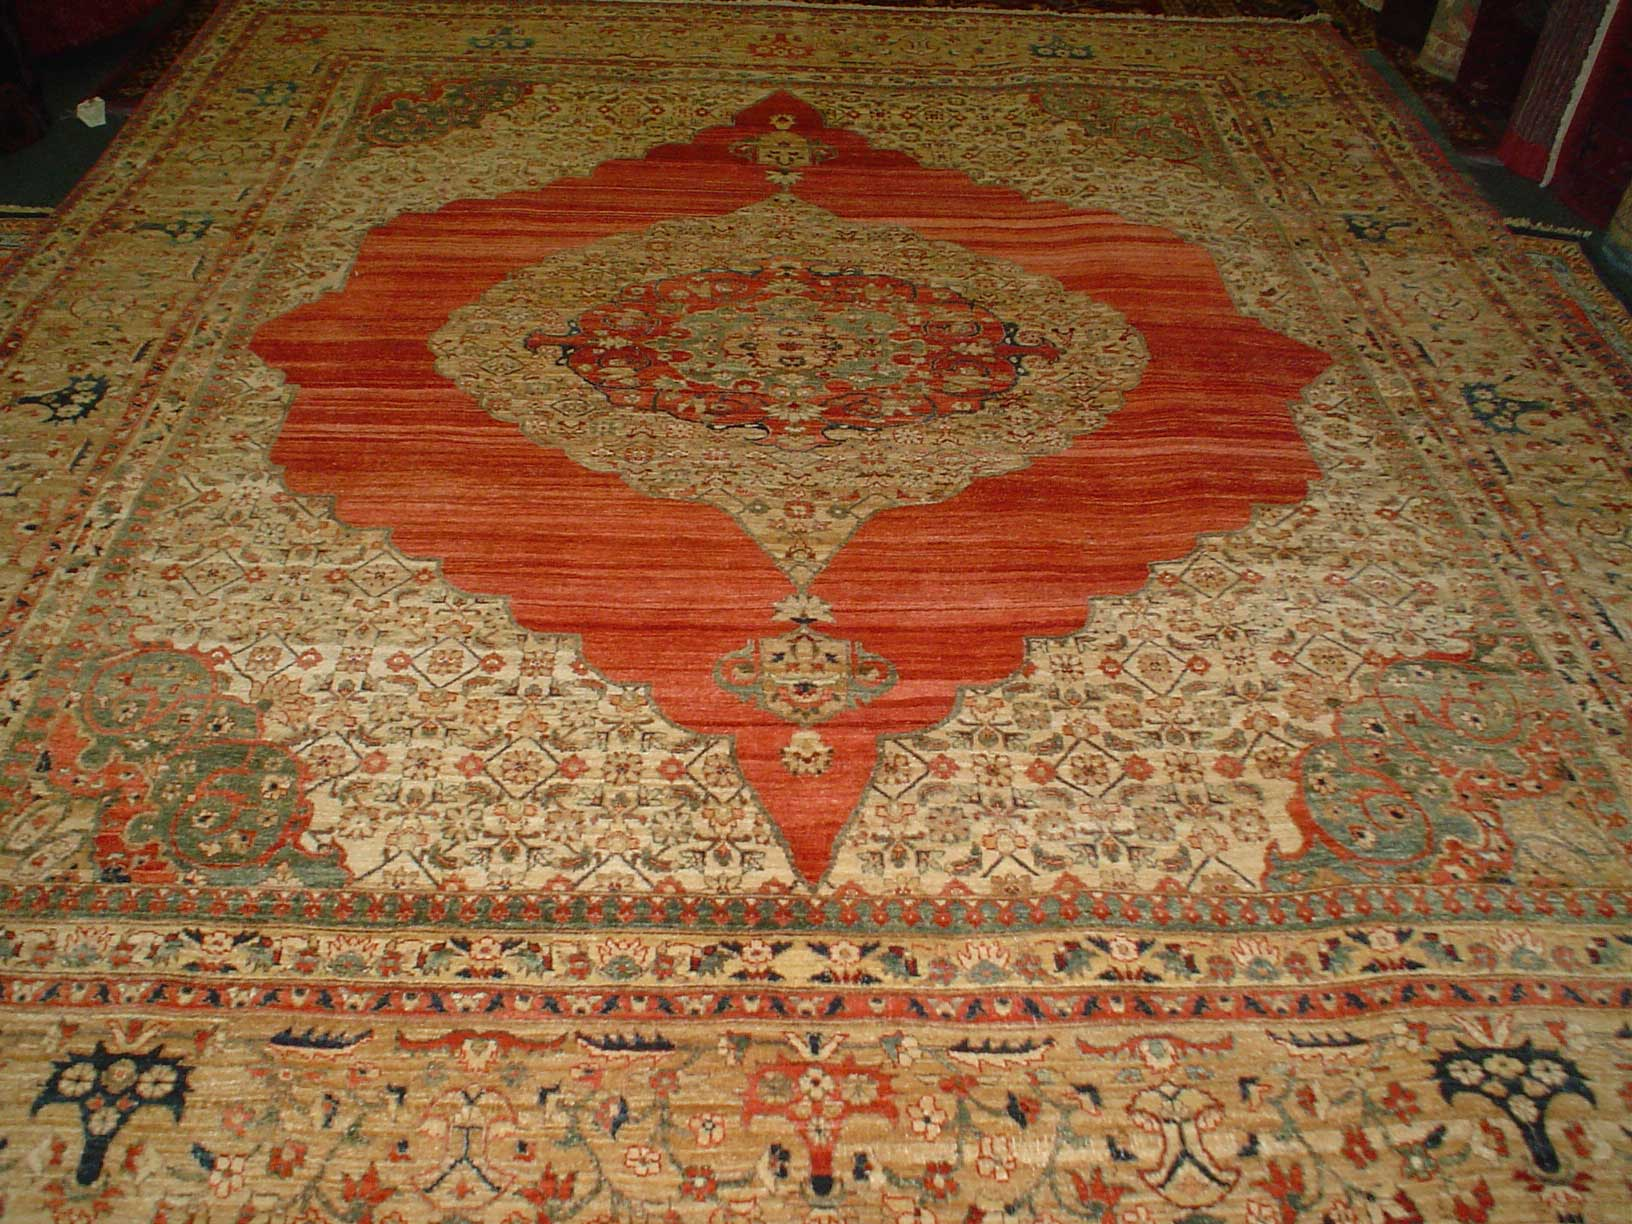 8 x 10 veg dyed, handmade rug from Afghanistan. Exquisite.